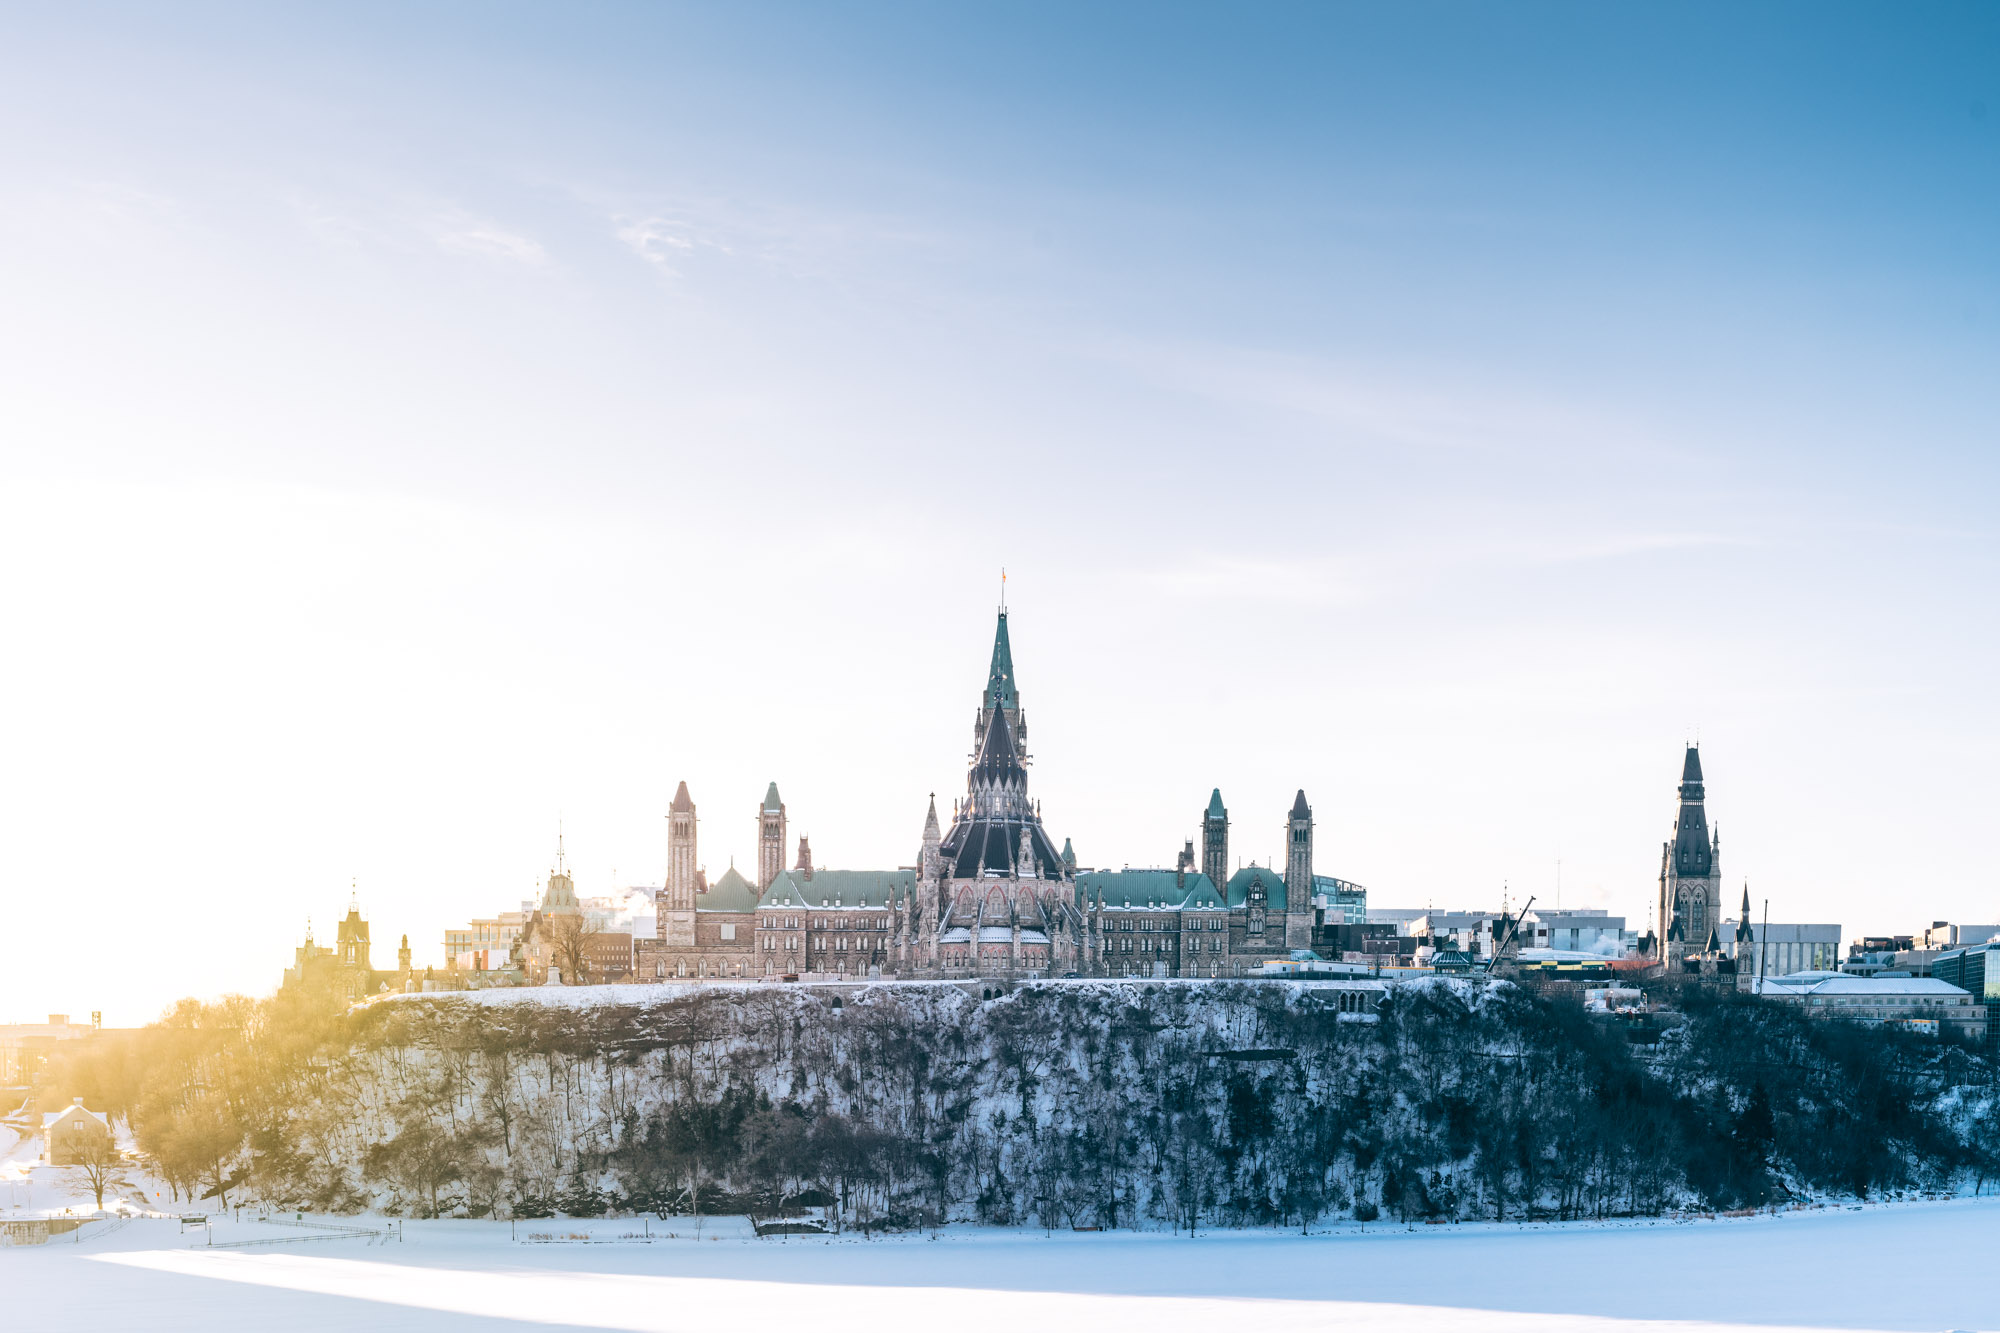 Ottawa Tourism Photos - Jeff Frenette Photography - Photographer